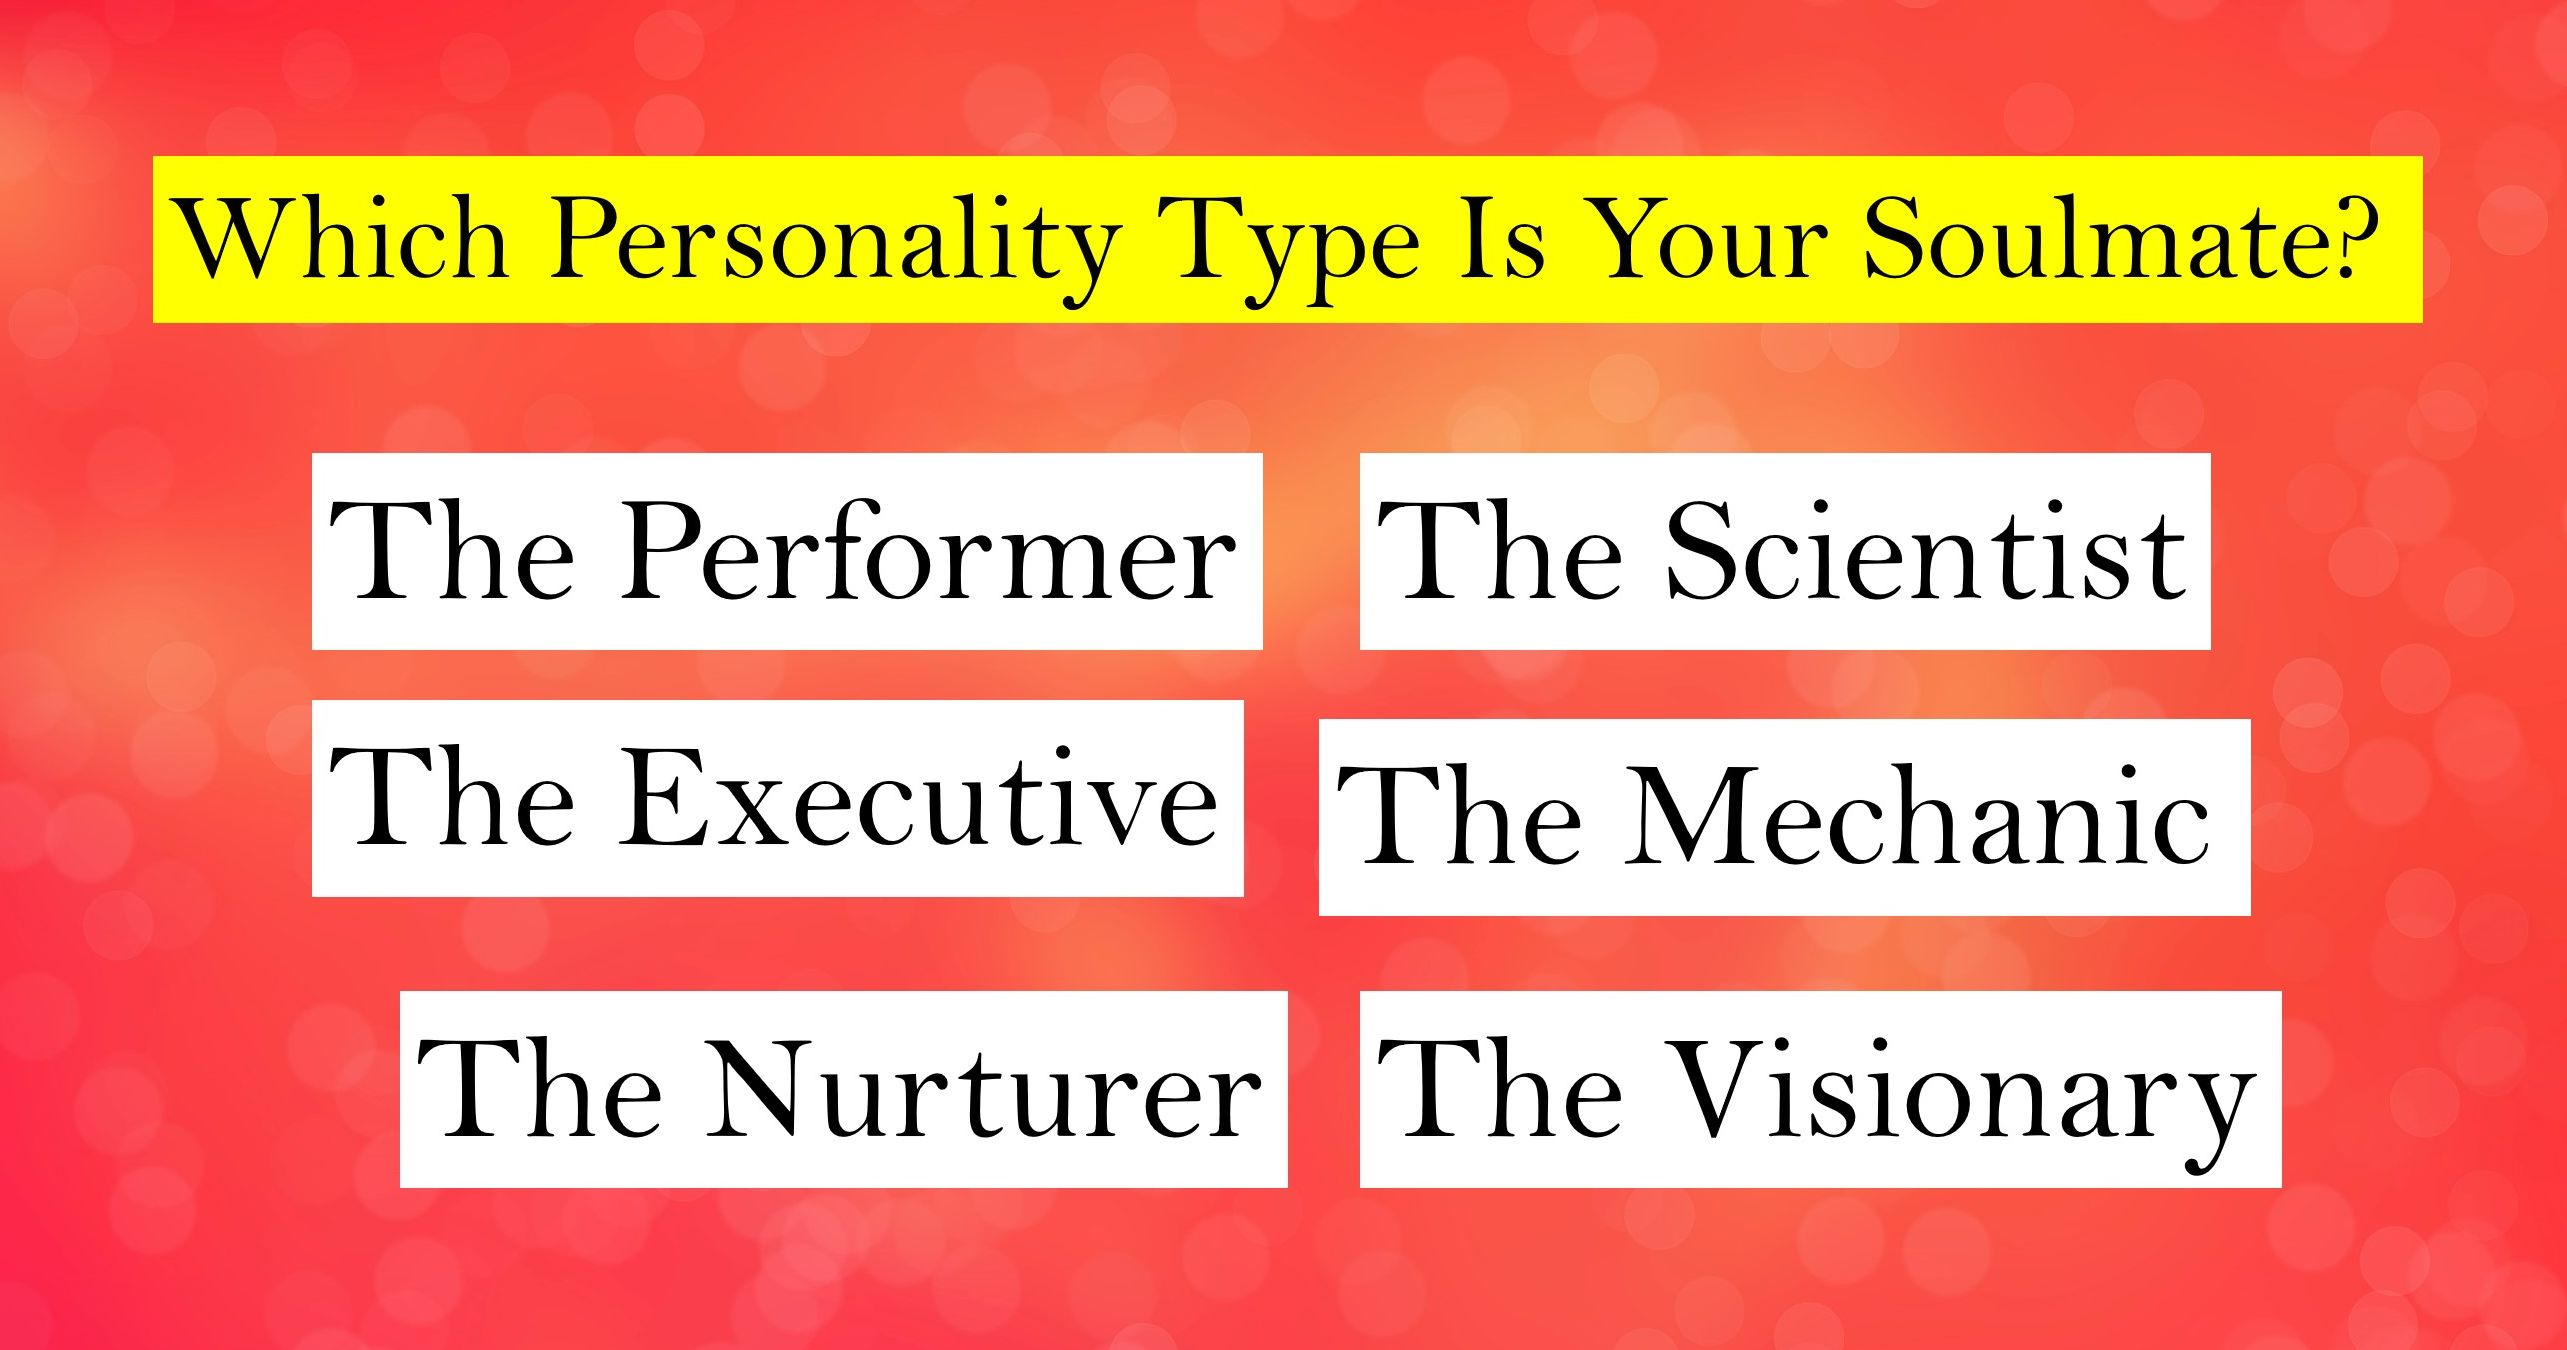 Your dating personality quiz